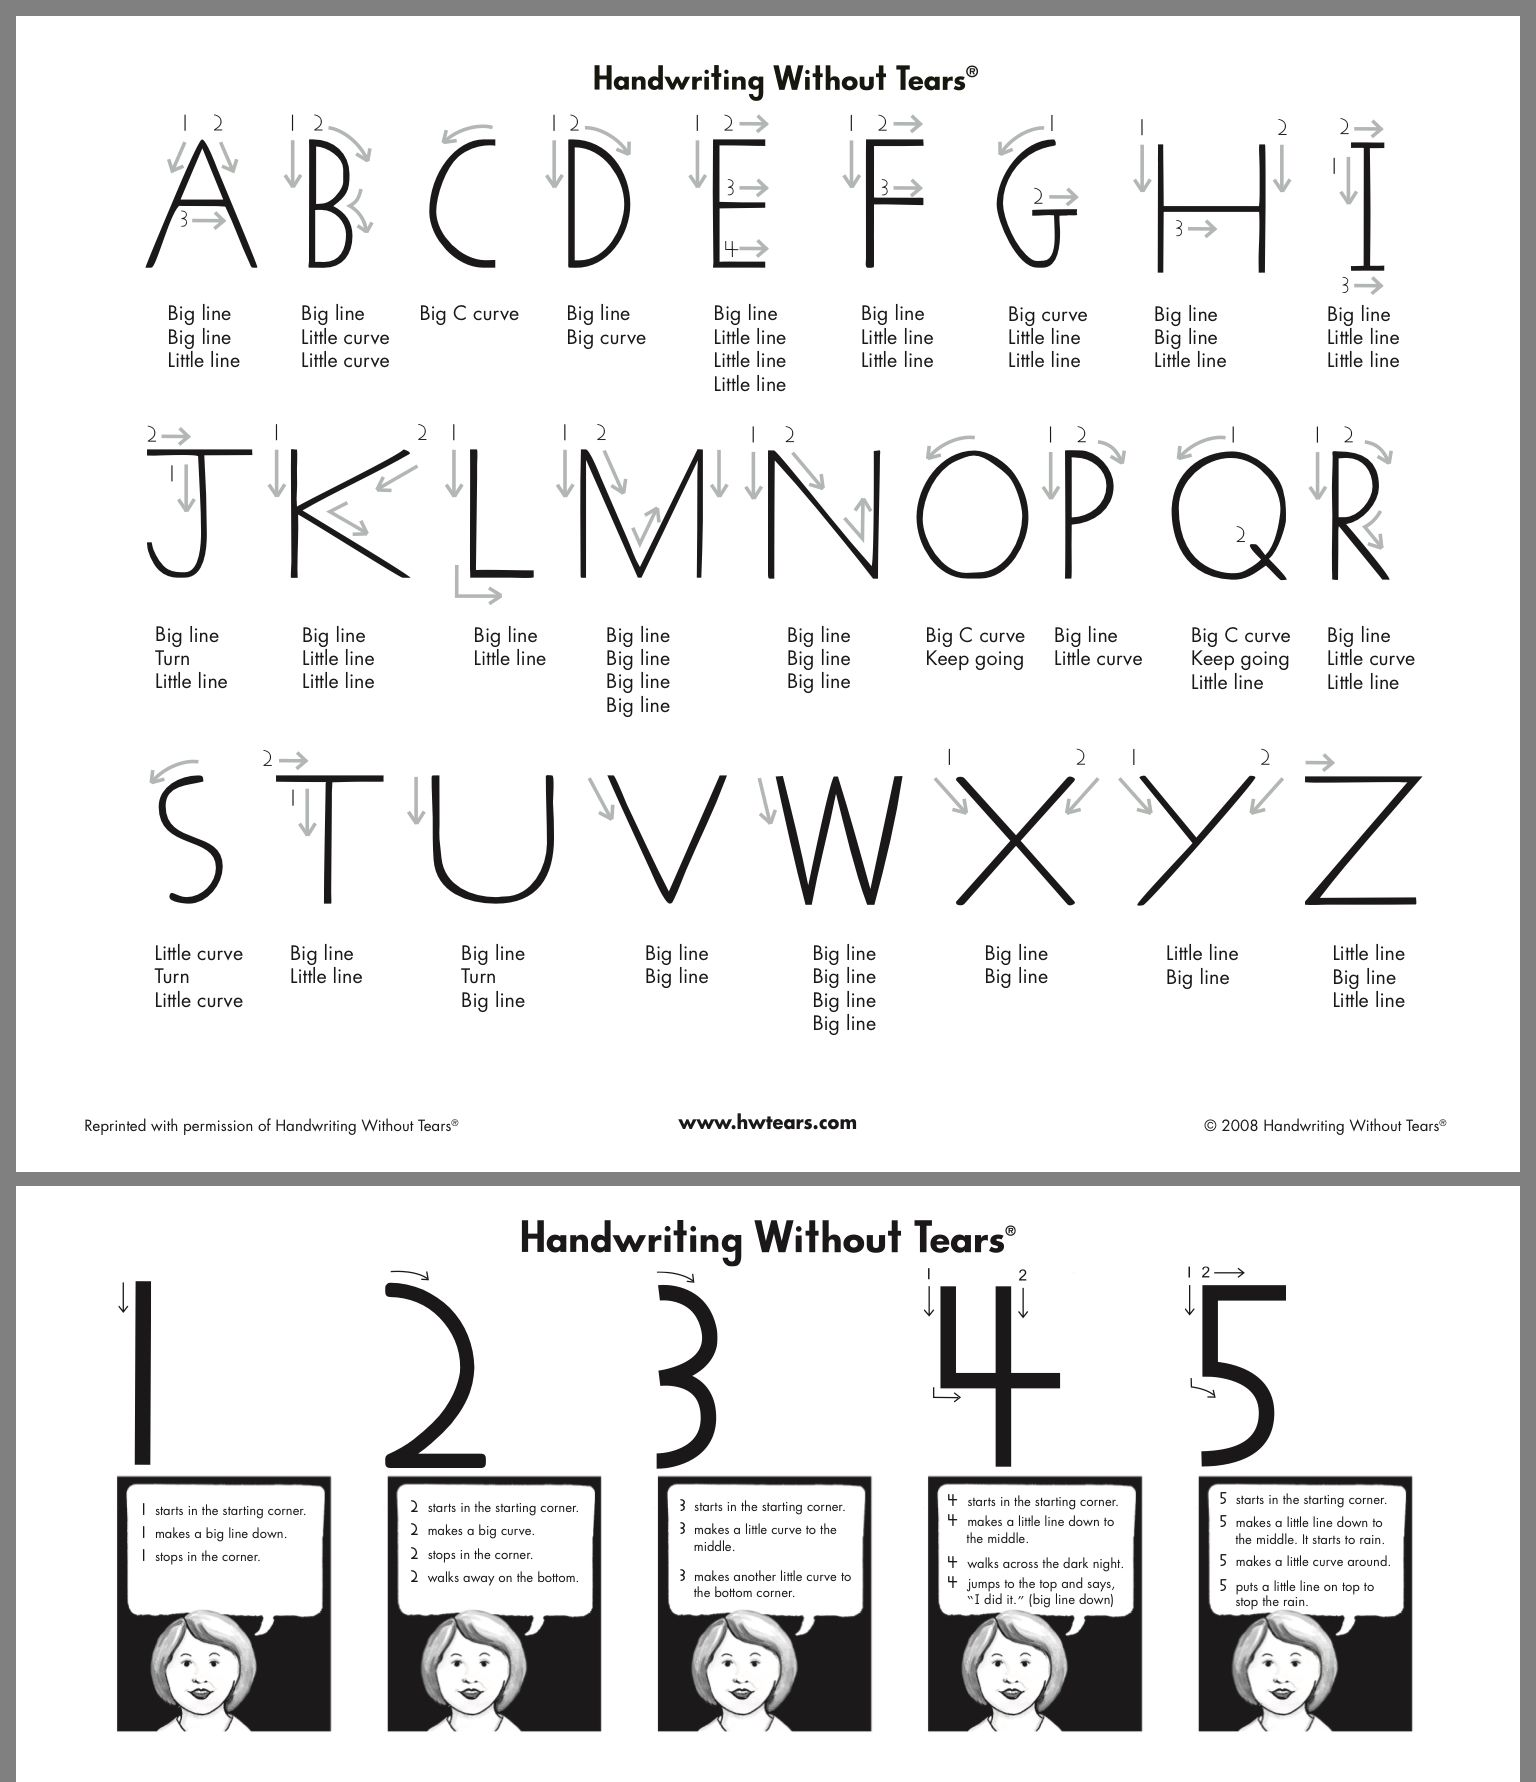 Pin By Sharon Harrison On Printing India School Handwriting Without Tears Handwriting